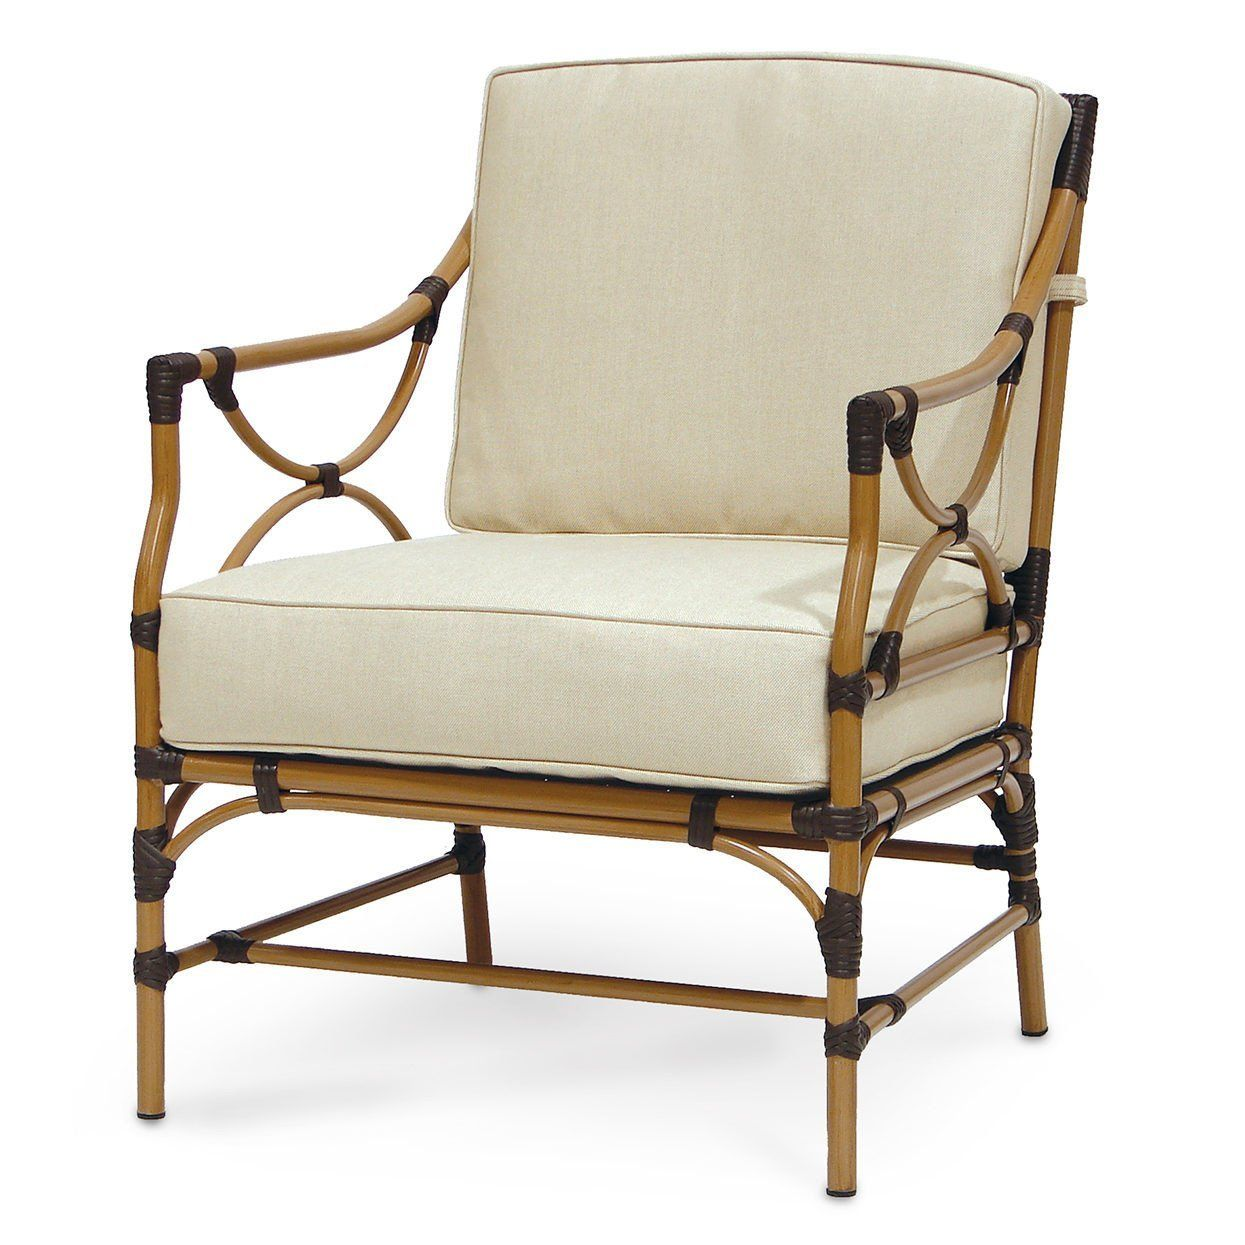 Arena outdoor lounge chair summerhouse catalog 1